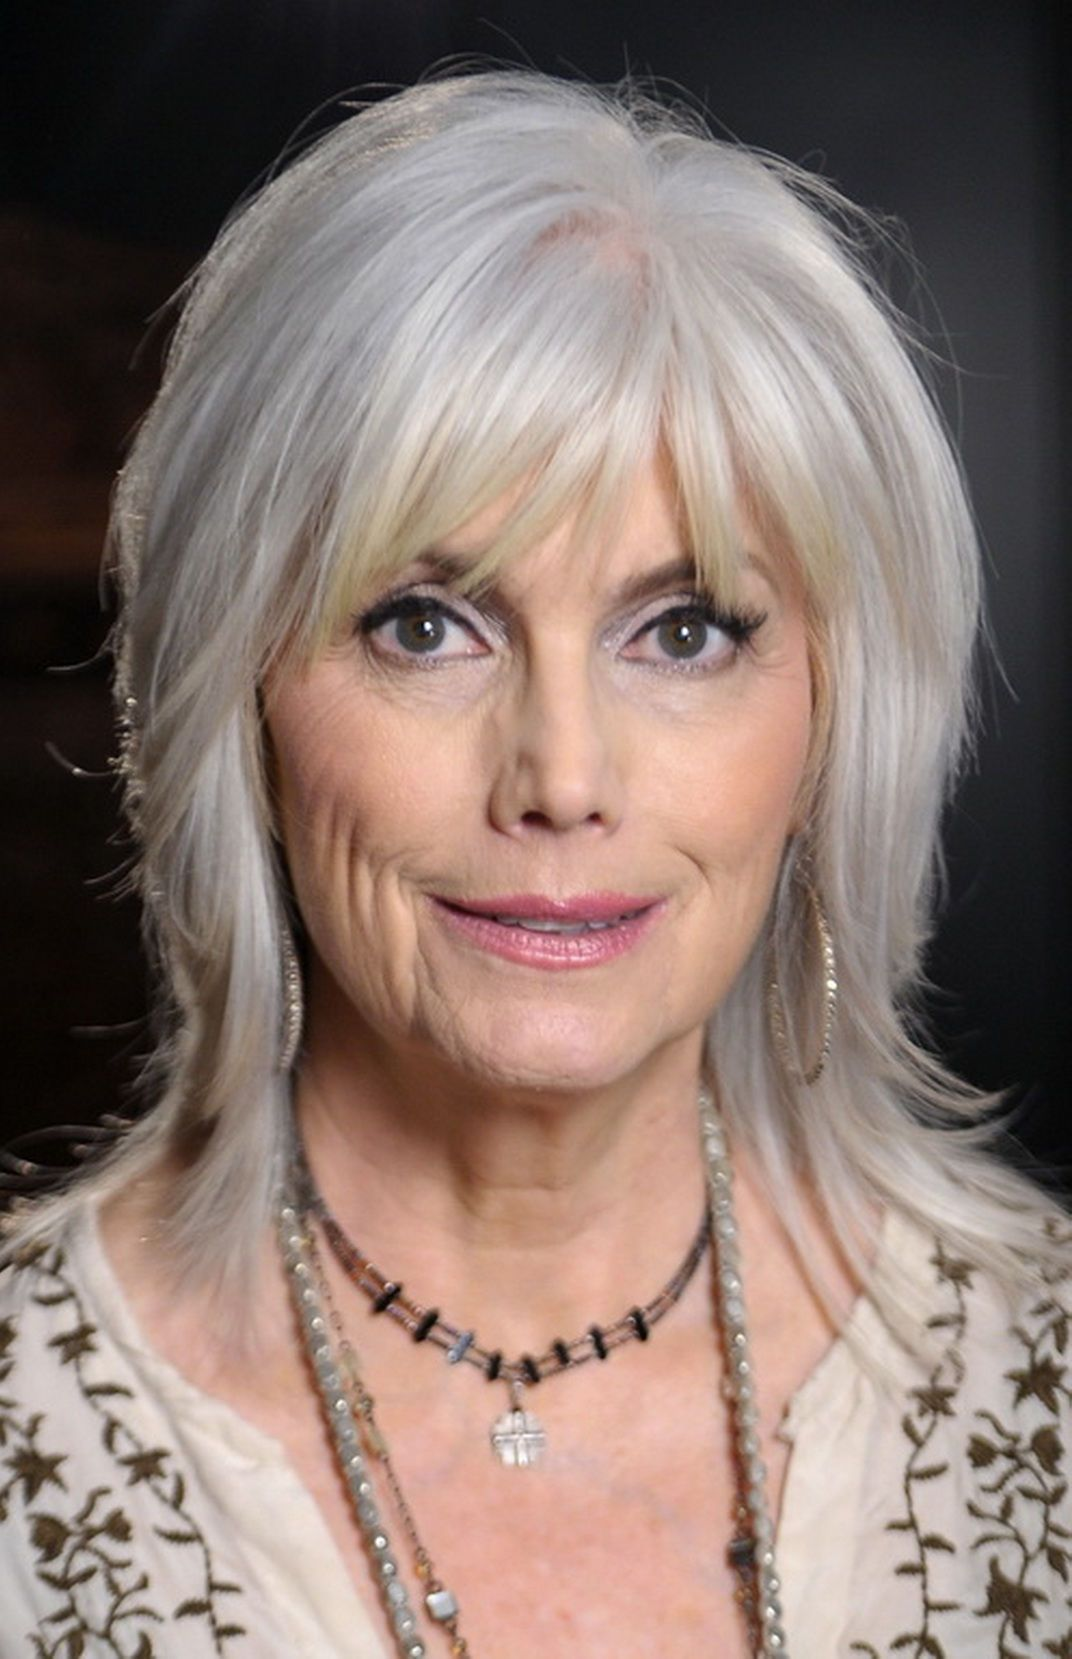 Cu cute bob hairstyles for women over 50 - Hairstyles With Bangs For Women Over 50 Trendy Gray Hair Bangs Hairstyles For Age Over